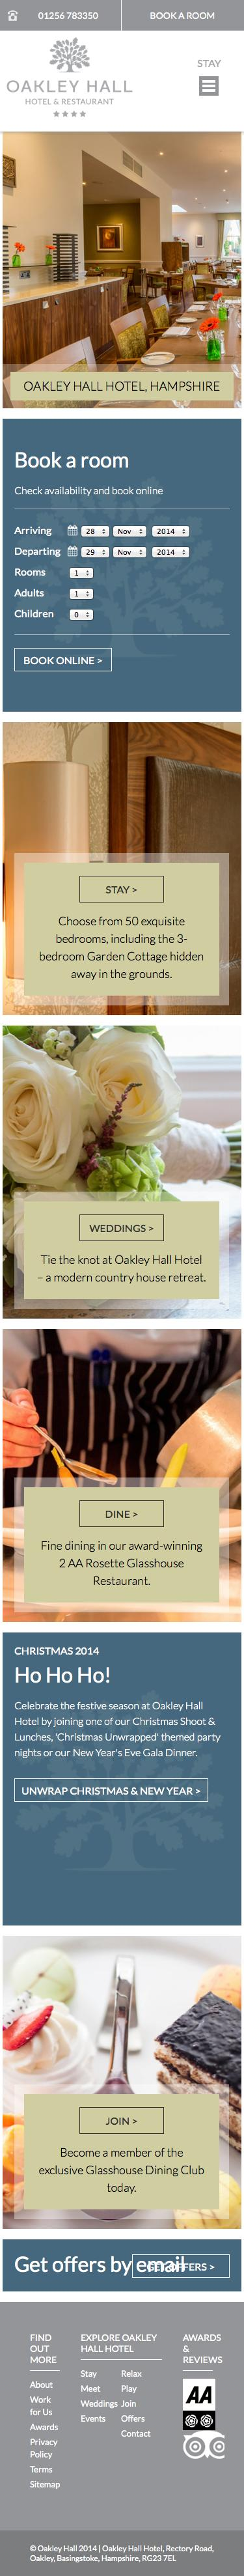 Screenshot of oakleyhall-park.com - Hotels in Hampshire | Oakley Hall Hotel Basingstoke - captured Nov. 27, 2014